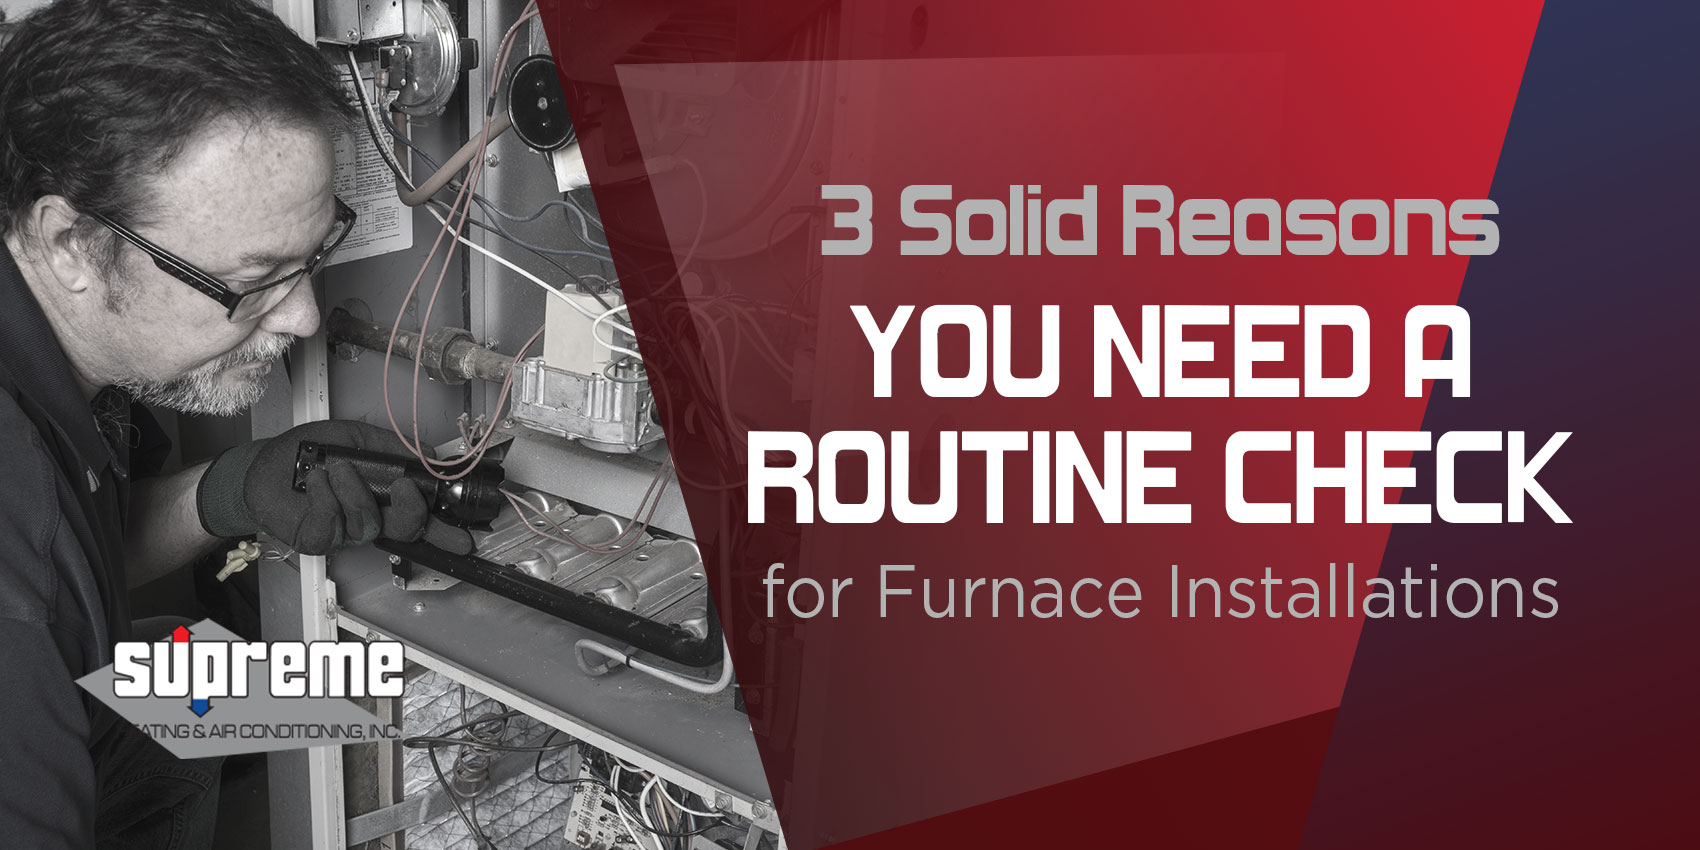 3 Solid Reasons You Need a Routine Check for Furnace Installations